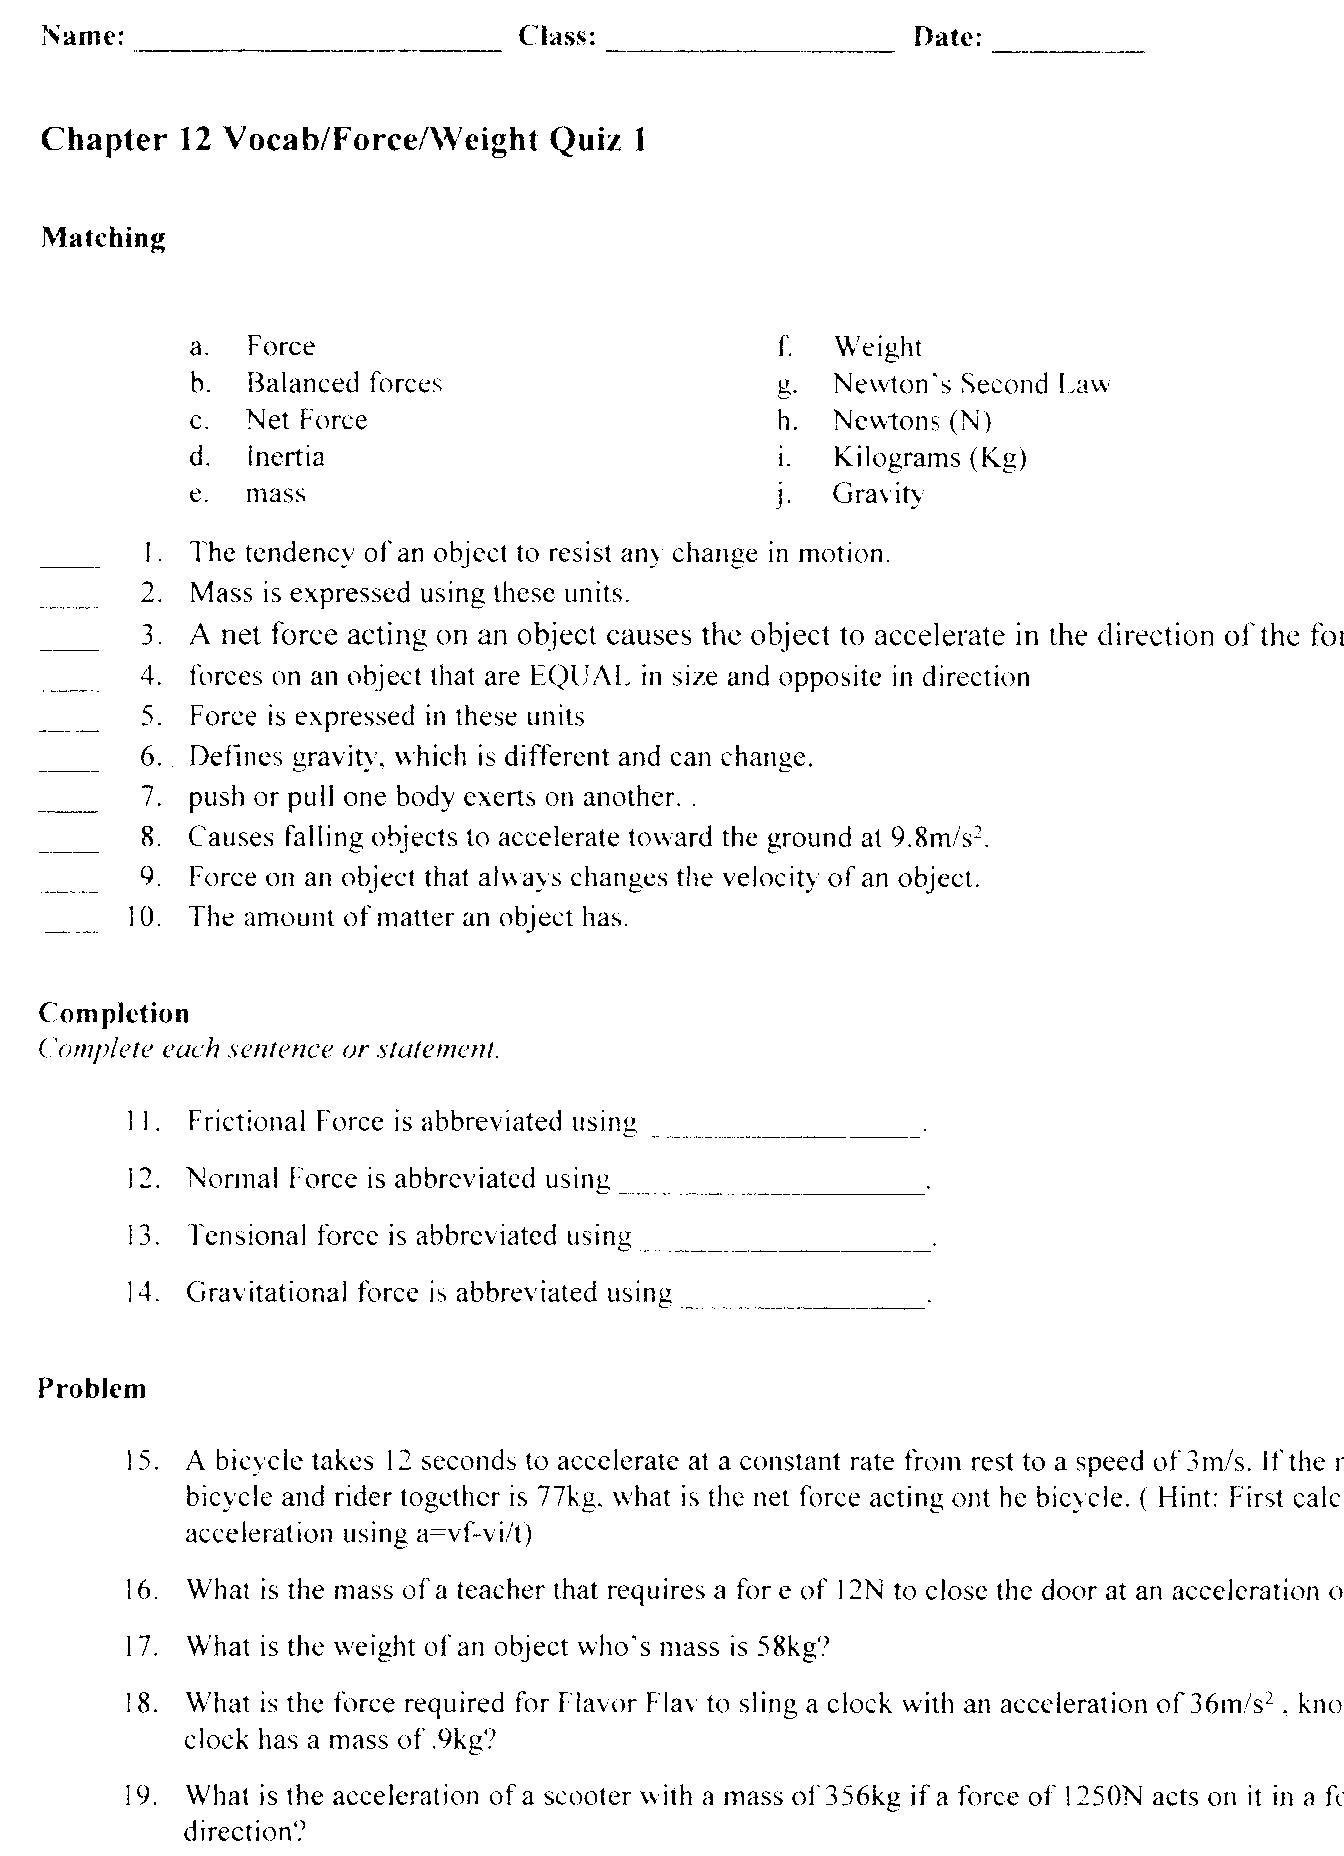 Worksheets Force Worksheets quia class page riverspscience worksheetsforce quiz side 1